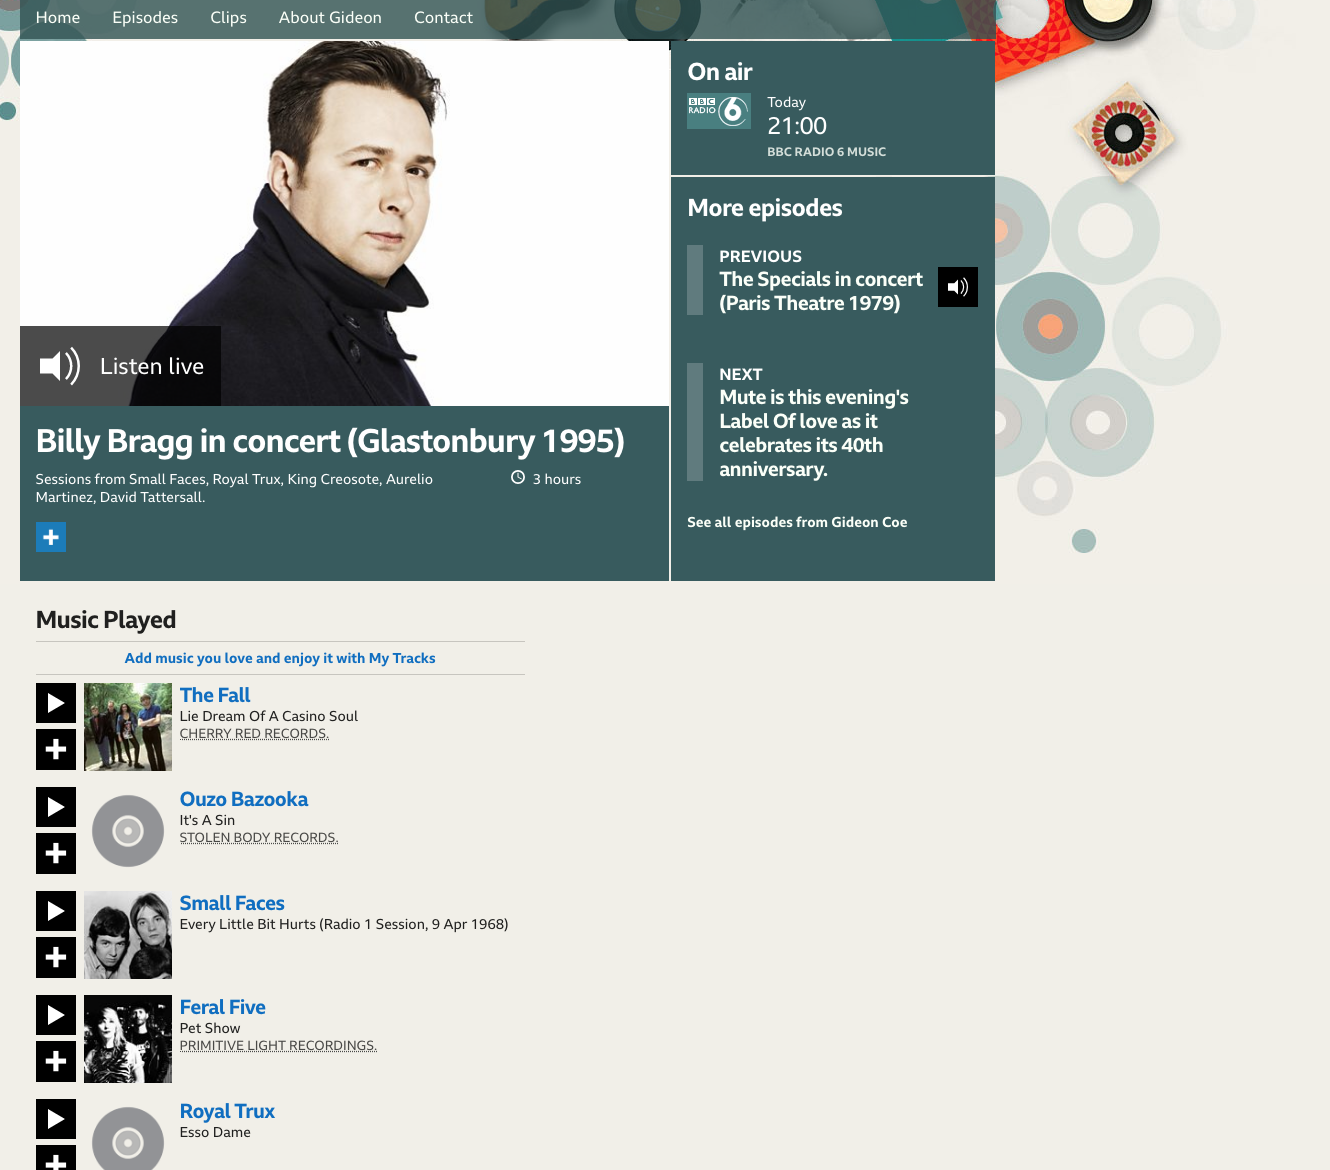 BBC Radio 6 Music, Gideon Coe, Premiere, Pet Show, Feral Five, electro, electronica, electropunk, synth, bass, AI, robot